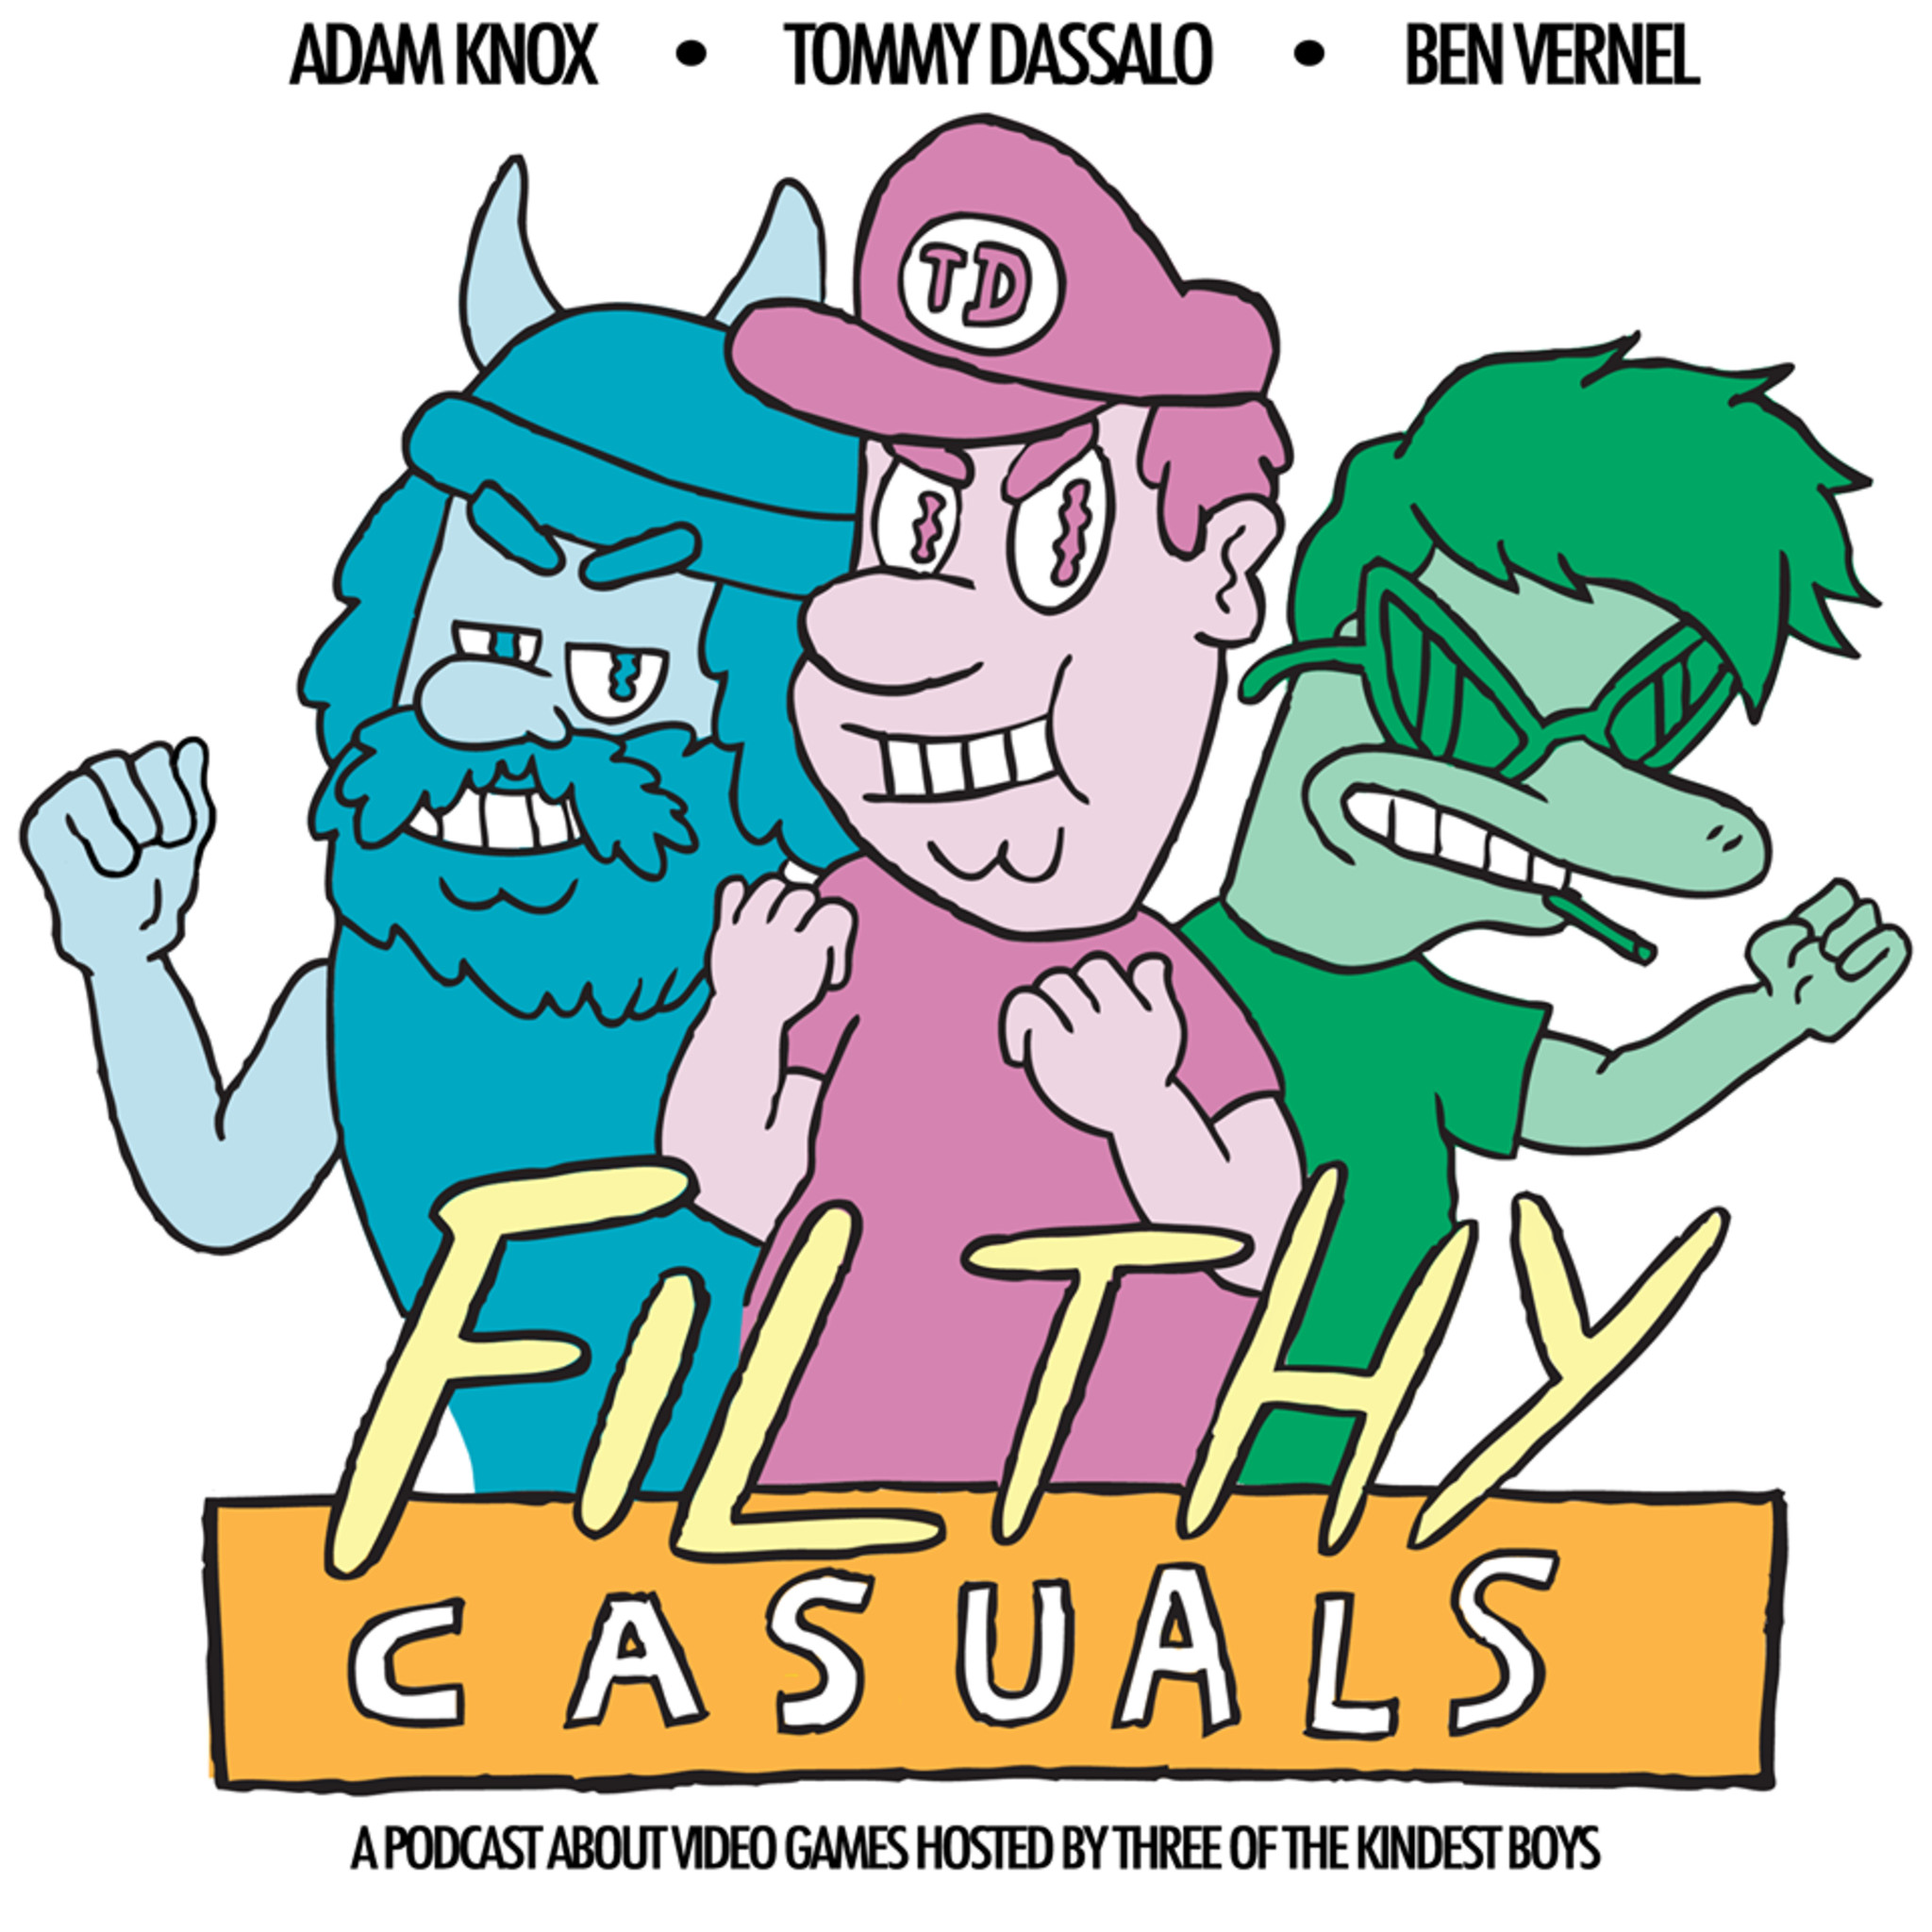 Filthy Casuals with Tommy Dassalo, Ben Vernel and Adam Knox clips.